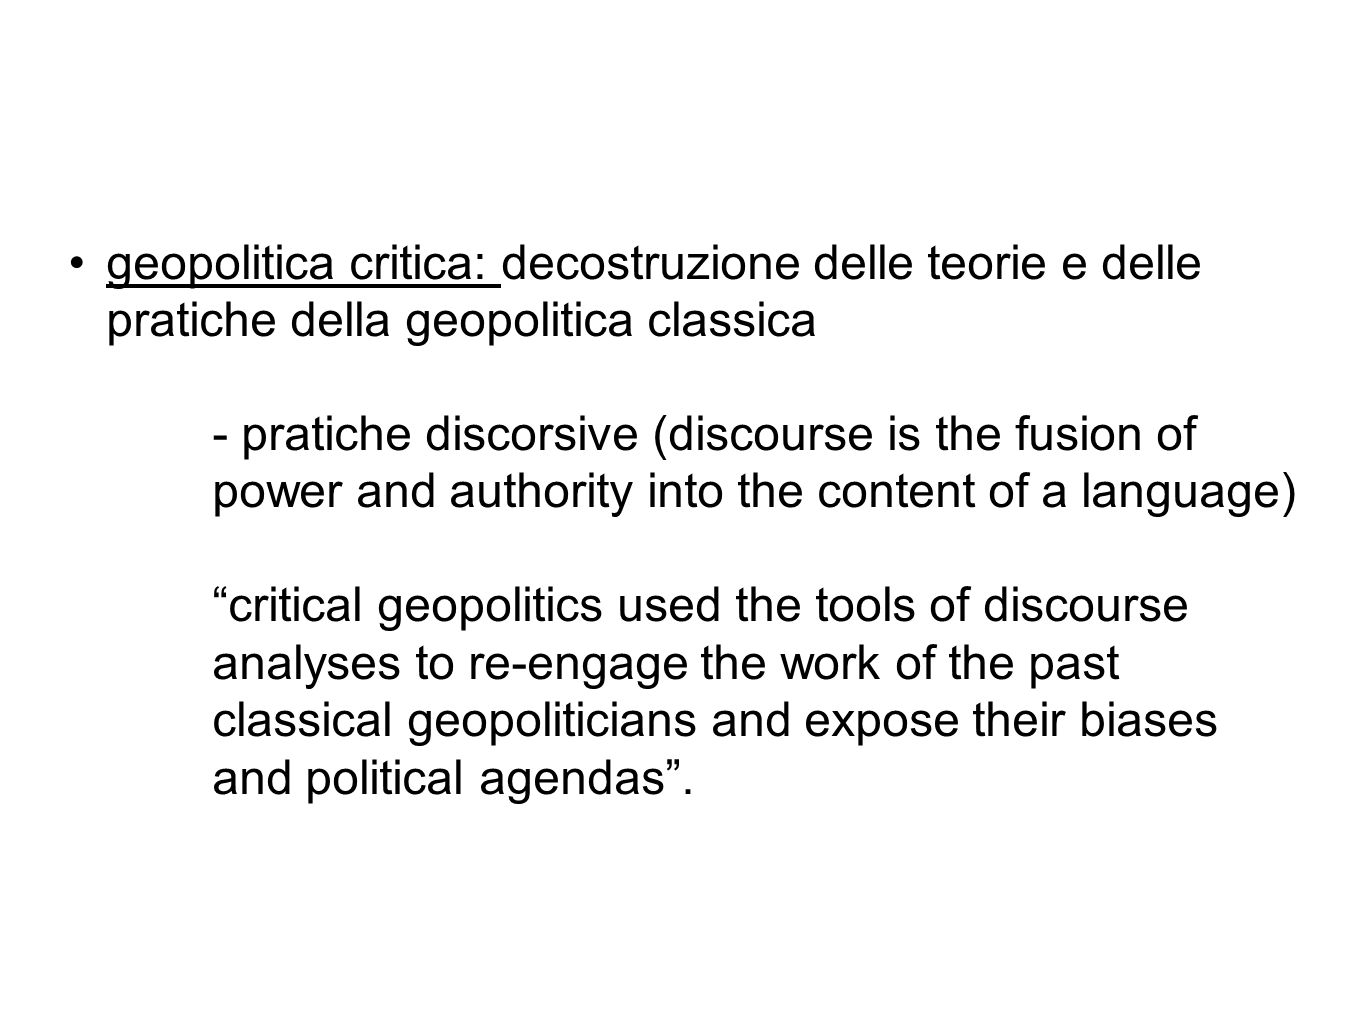 geopolitica critica: decostruzione delle teorie e delle pratiche della geopolitica classica - pratiche discorsive (discourse is the fusion of power and authority into the content of a language) critical geopolitics used the tools of discourse analyses to re-engage the work of the past classical geopoliticians and expose their biases and political agendas .